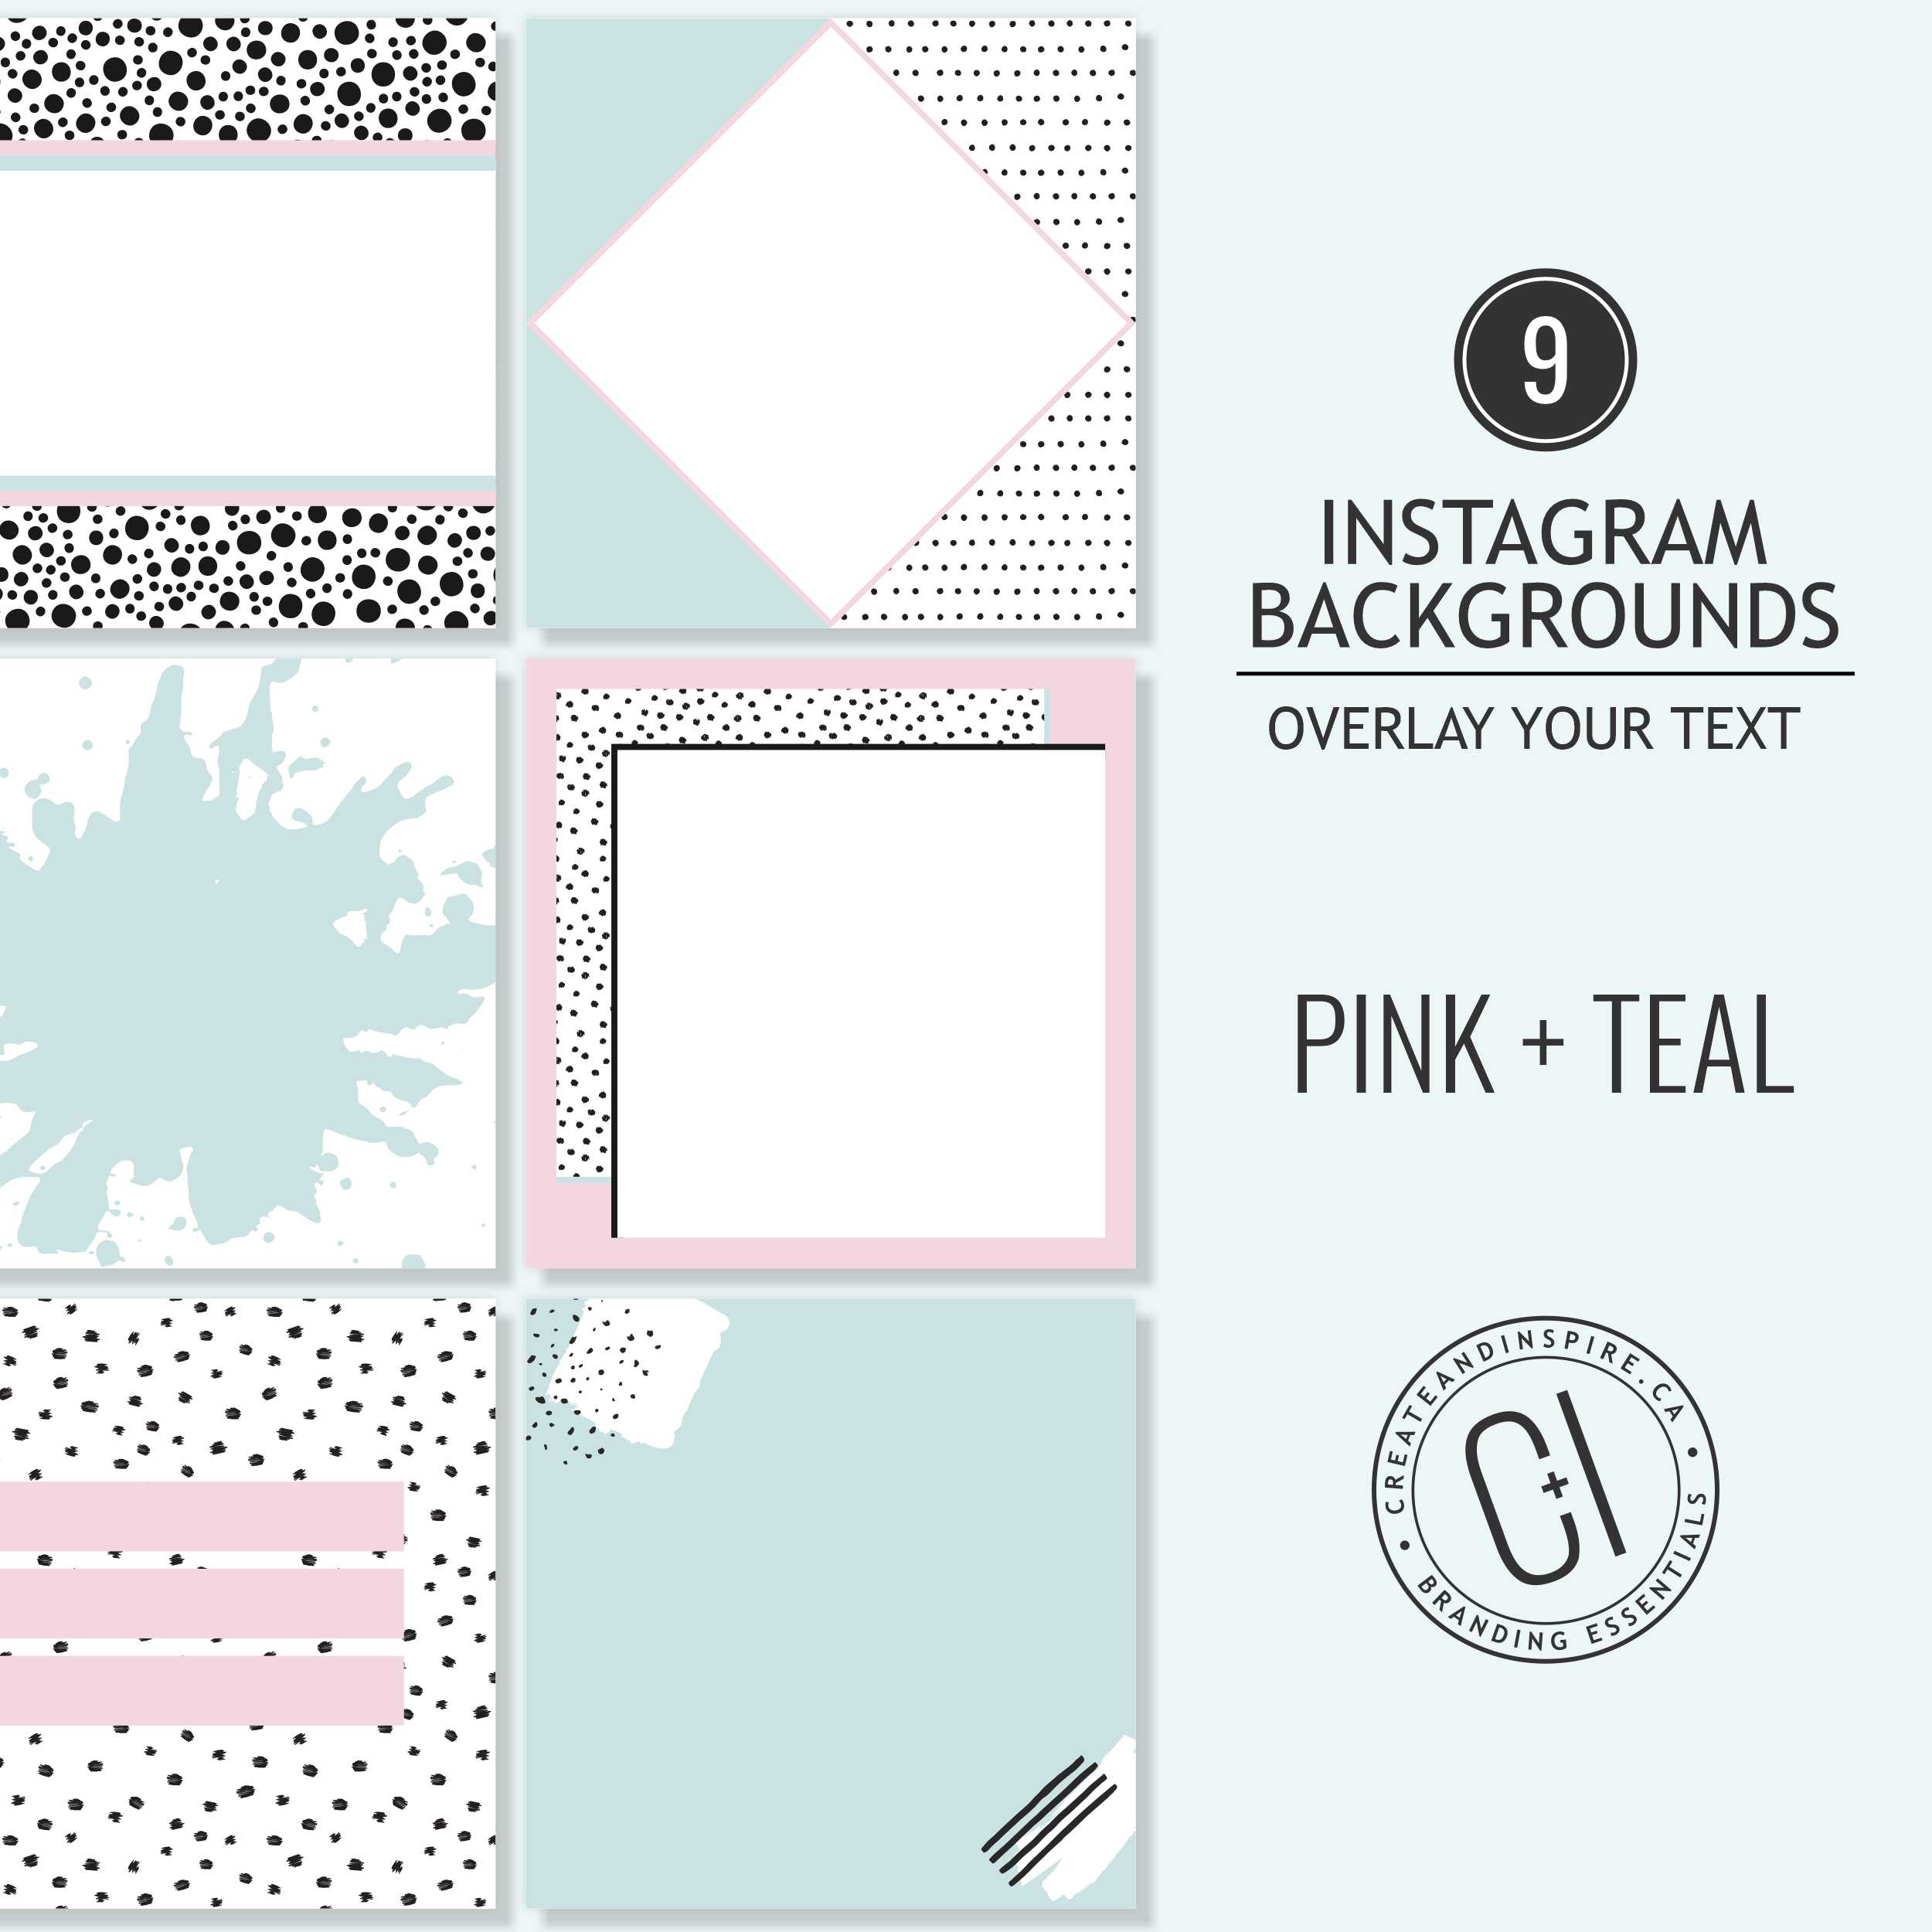 Pink and Teal Instagram Backgrounds